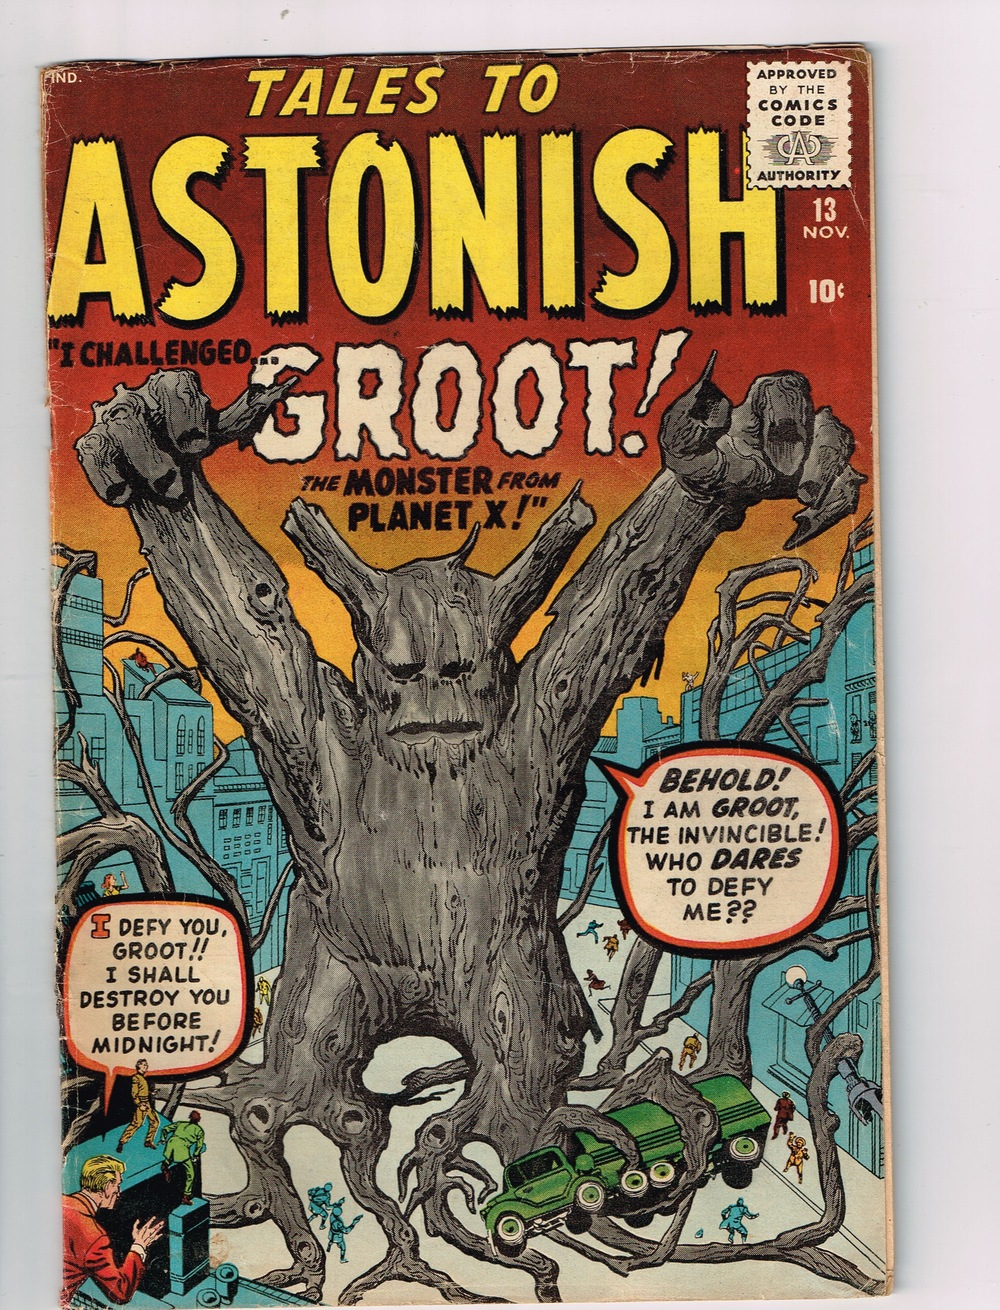 Tales To Astonish # 13